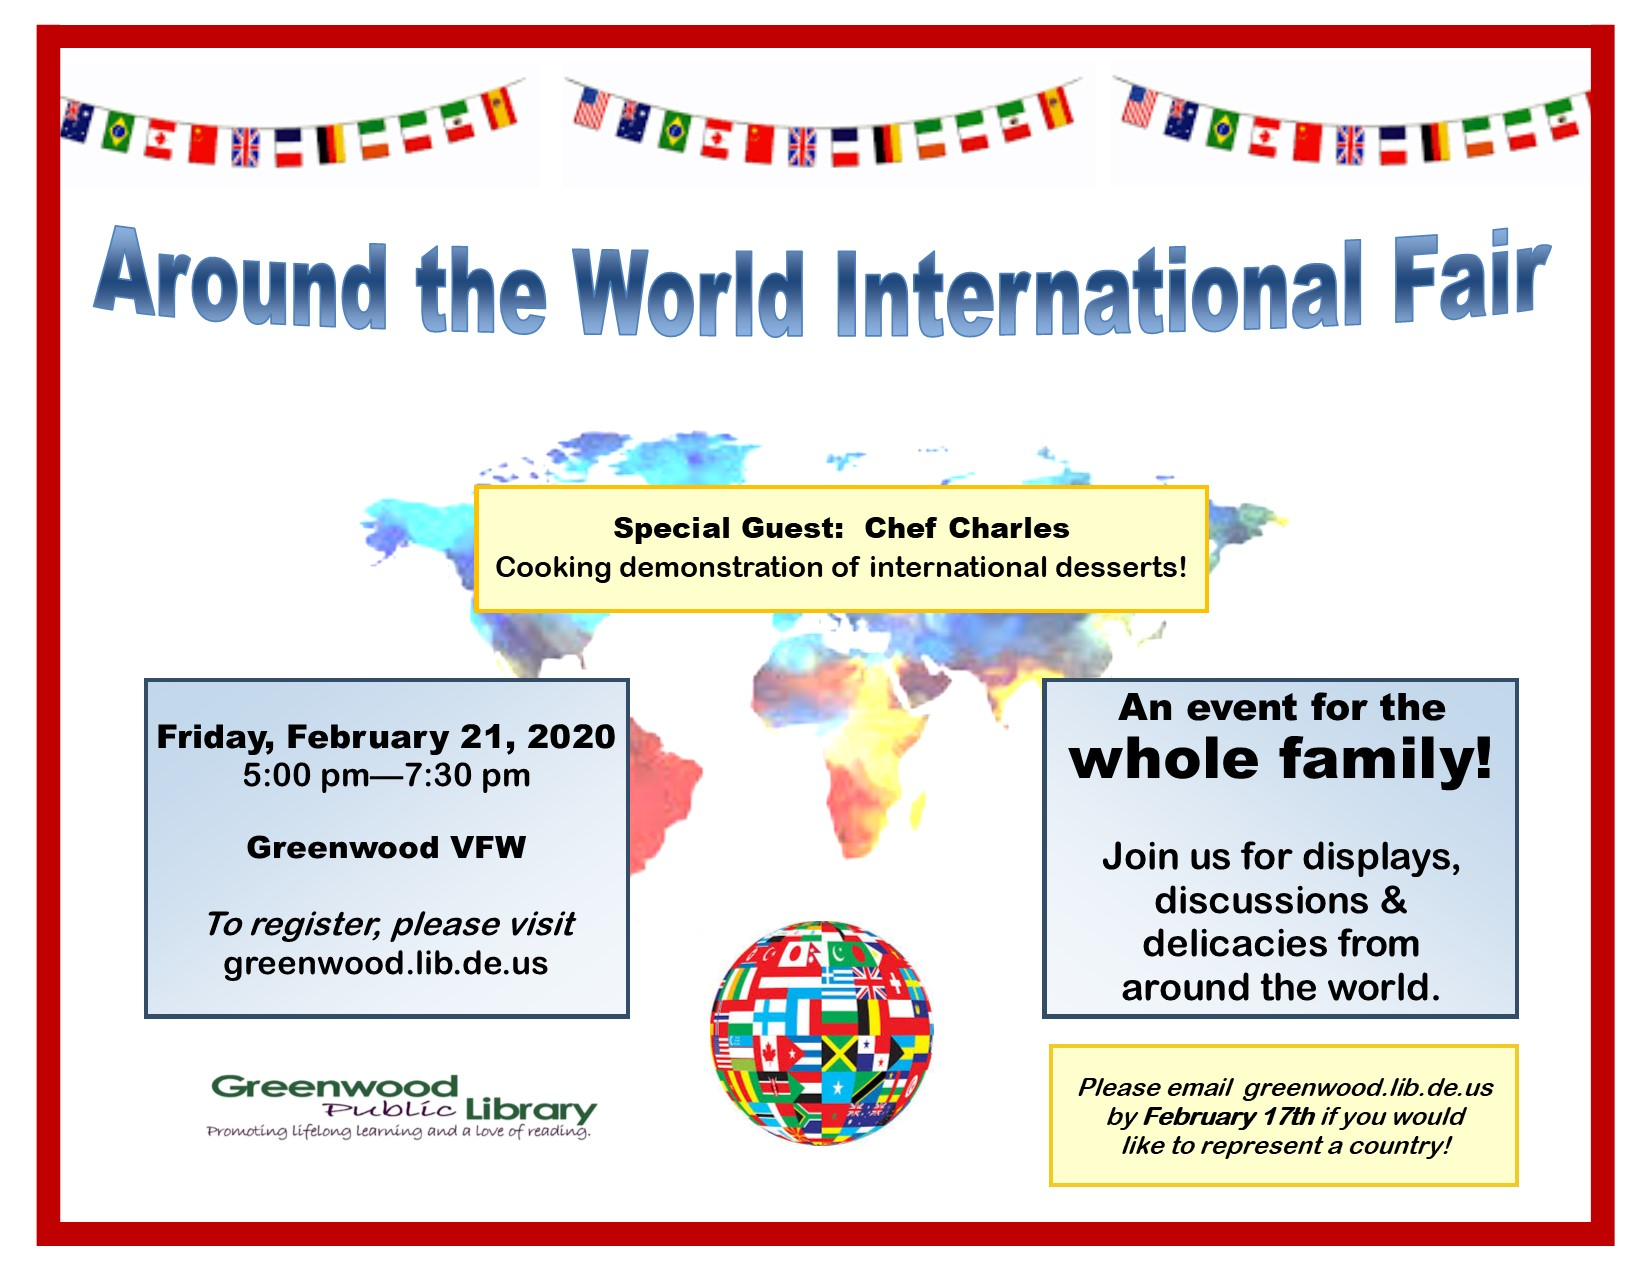 Around the World International Fair